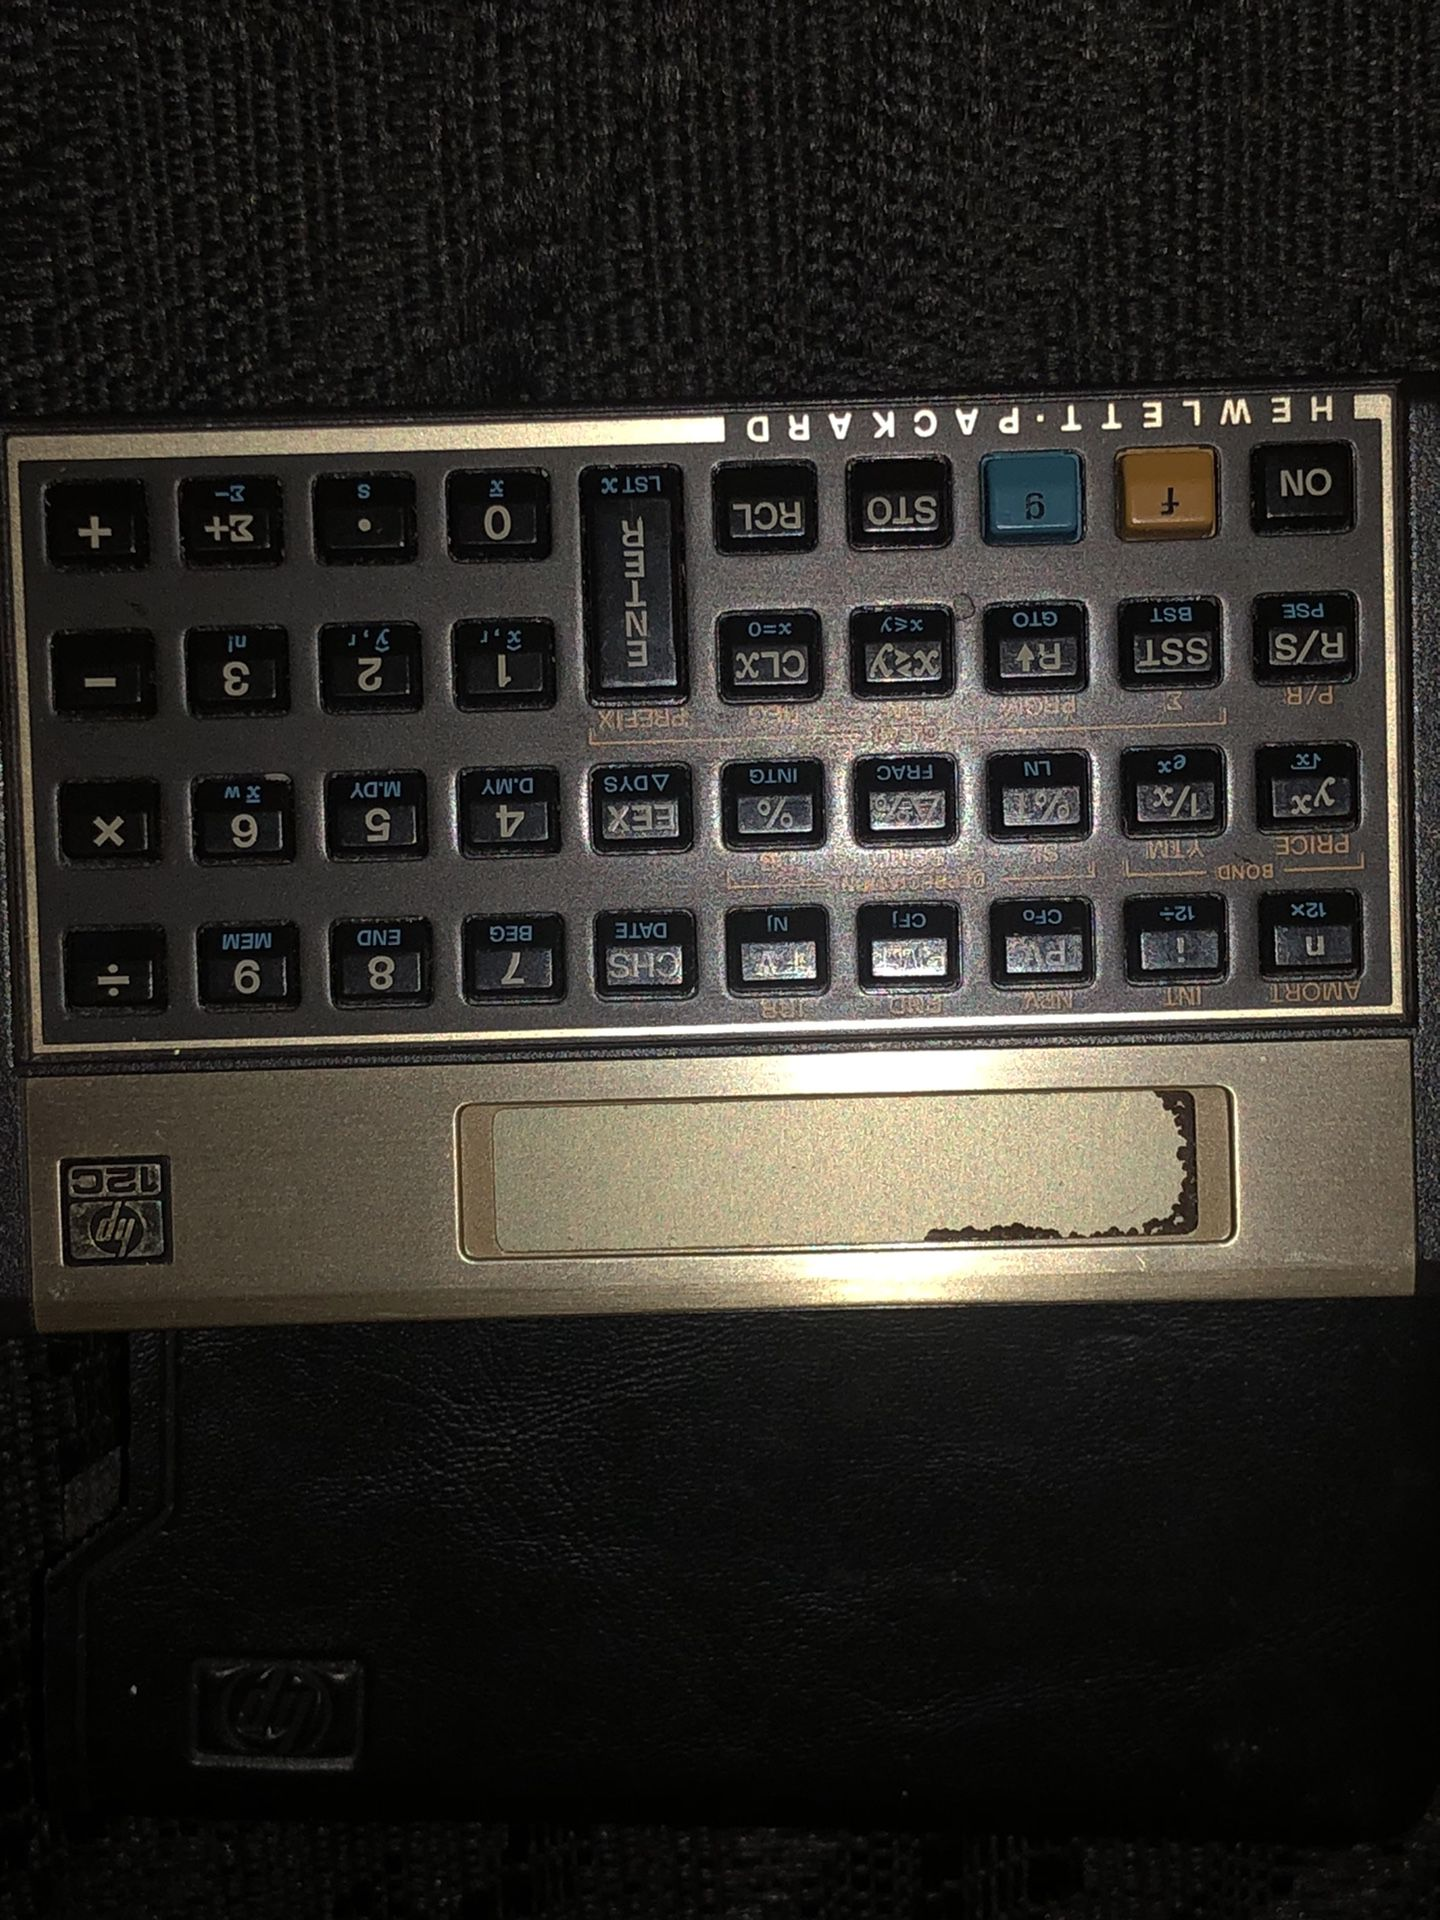 Calculator used to calculate mortgage payments etc.